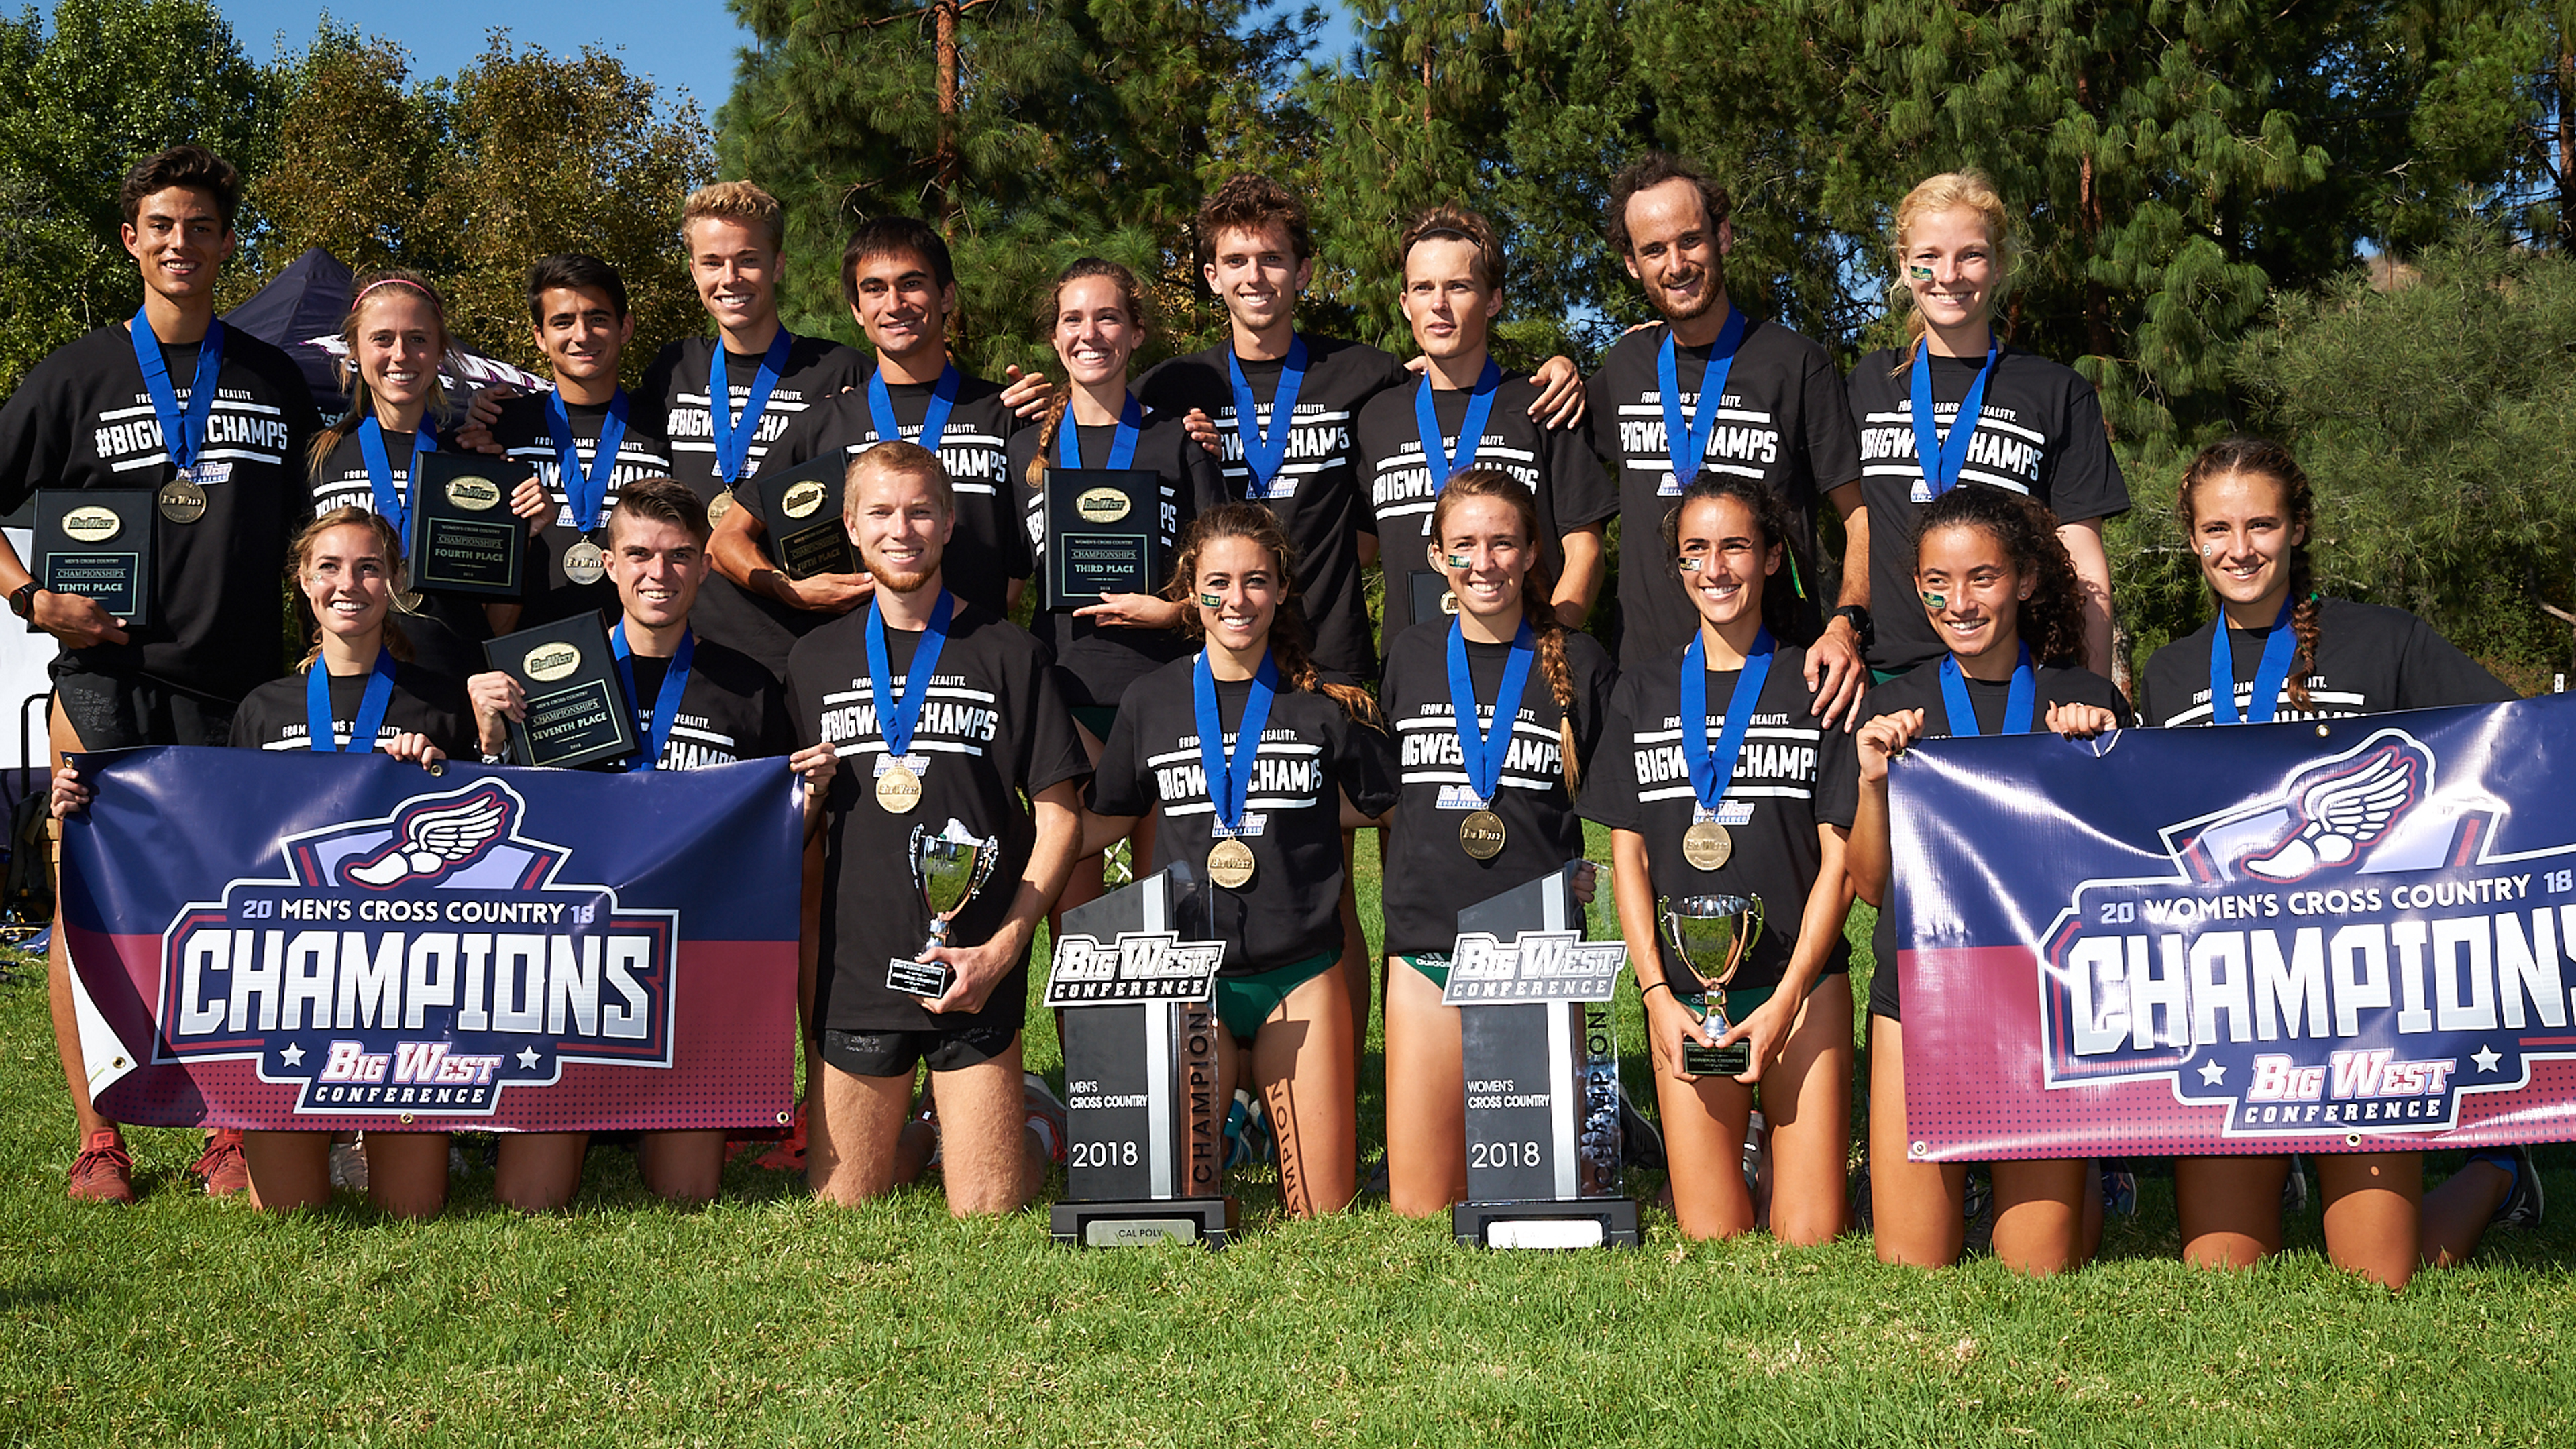 Cal Poly Cross Country Teams pose with Big West trophies and banners